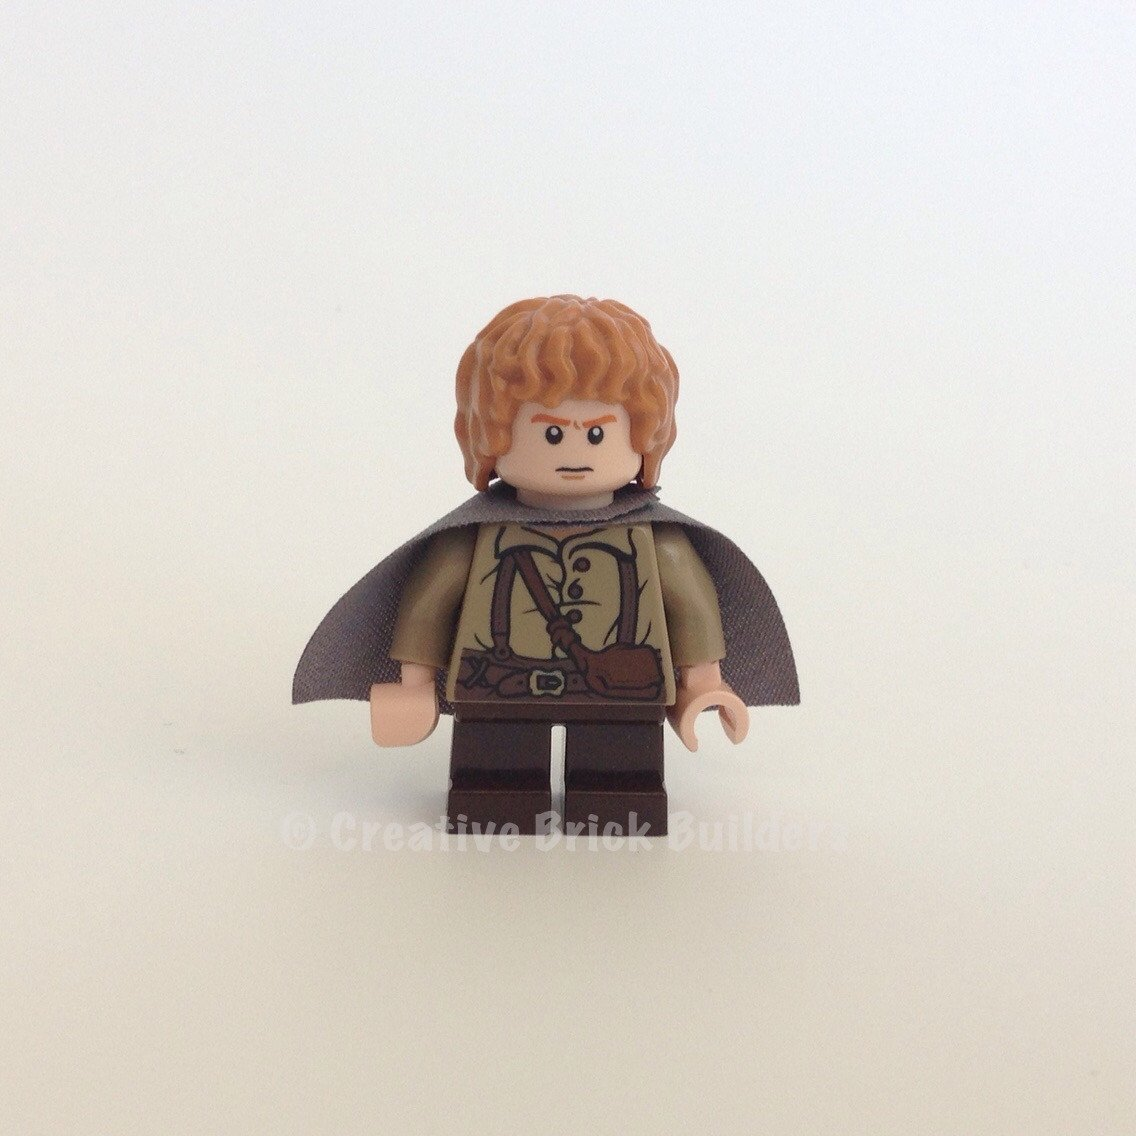 The Lord of the Rings Mini Fig // Mini Figure LEGO Samwise Gamgee